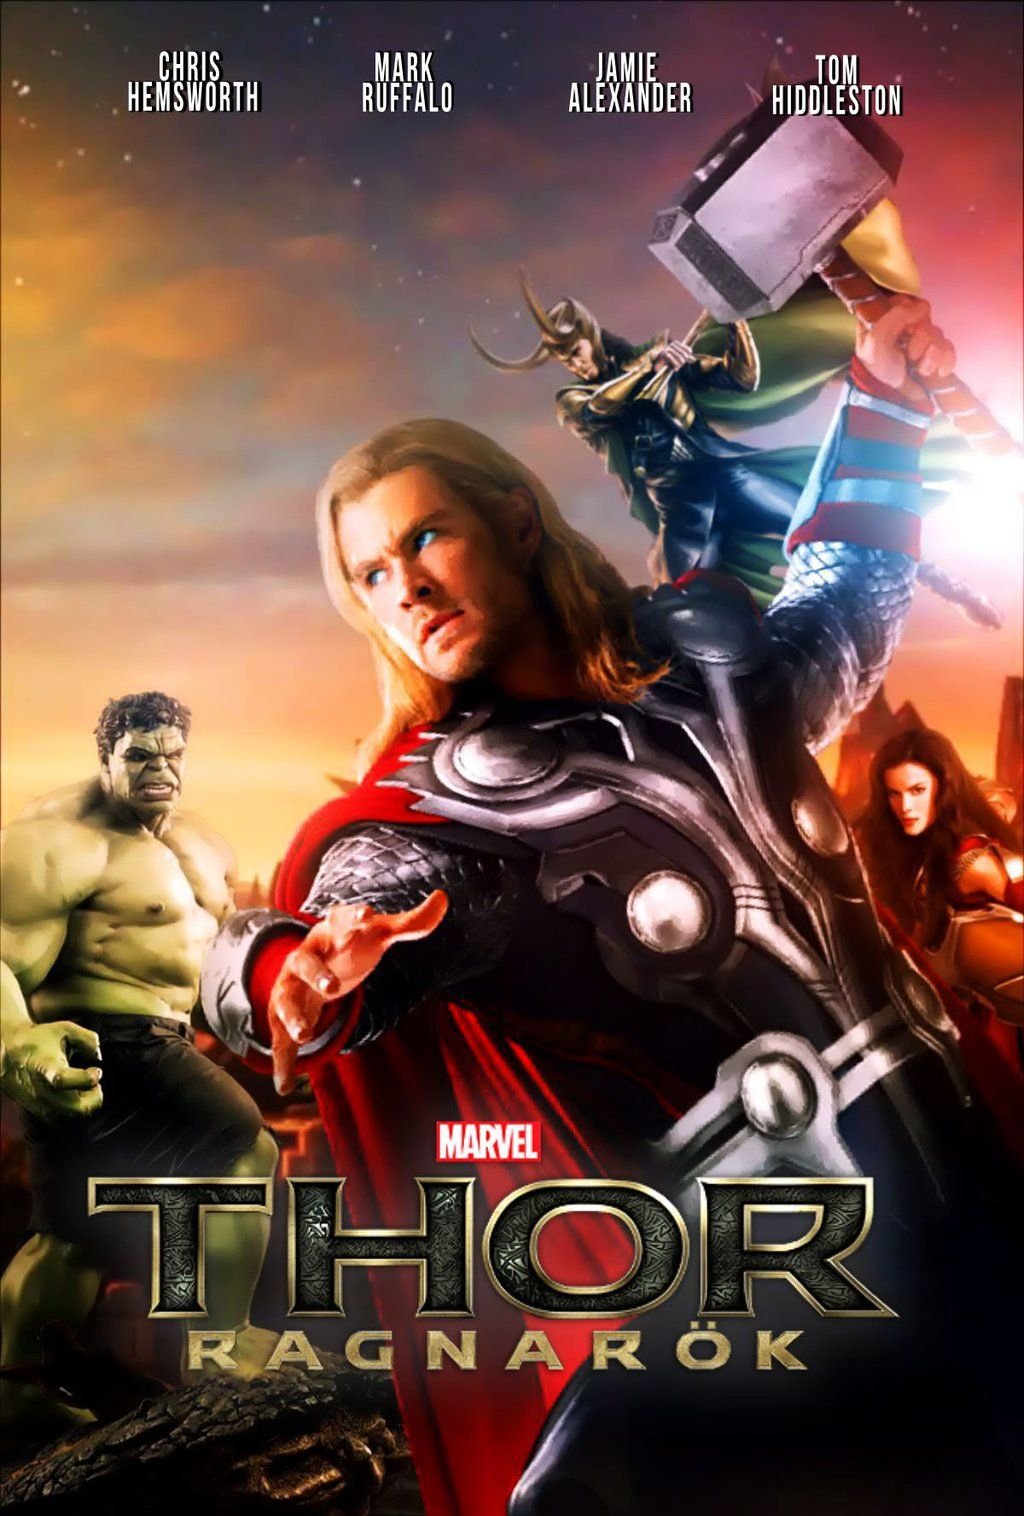 Thor Ragnarok Poster Thor Ragnarok Movie Thor Ragnarok Full Movie Ragnarok Movie